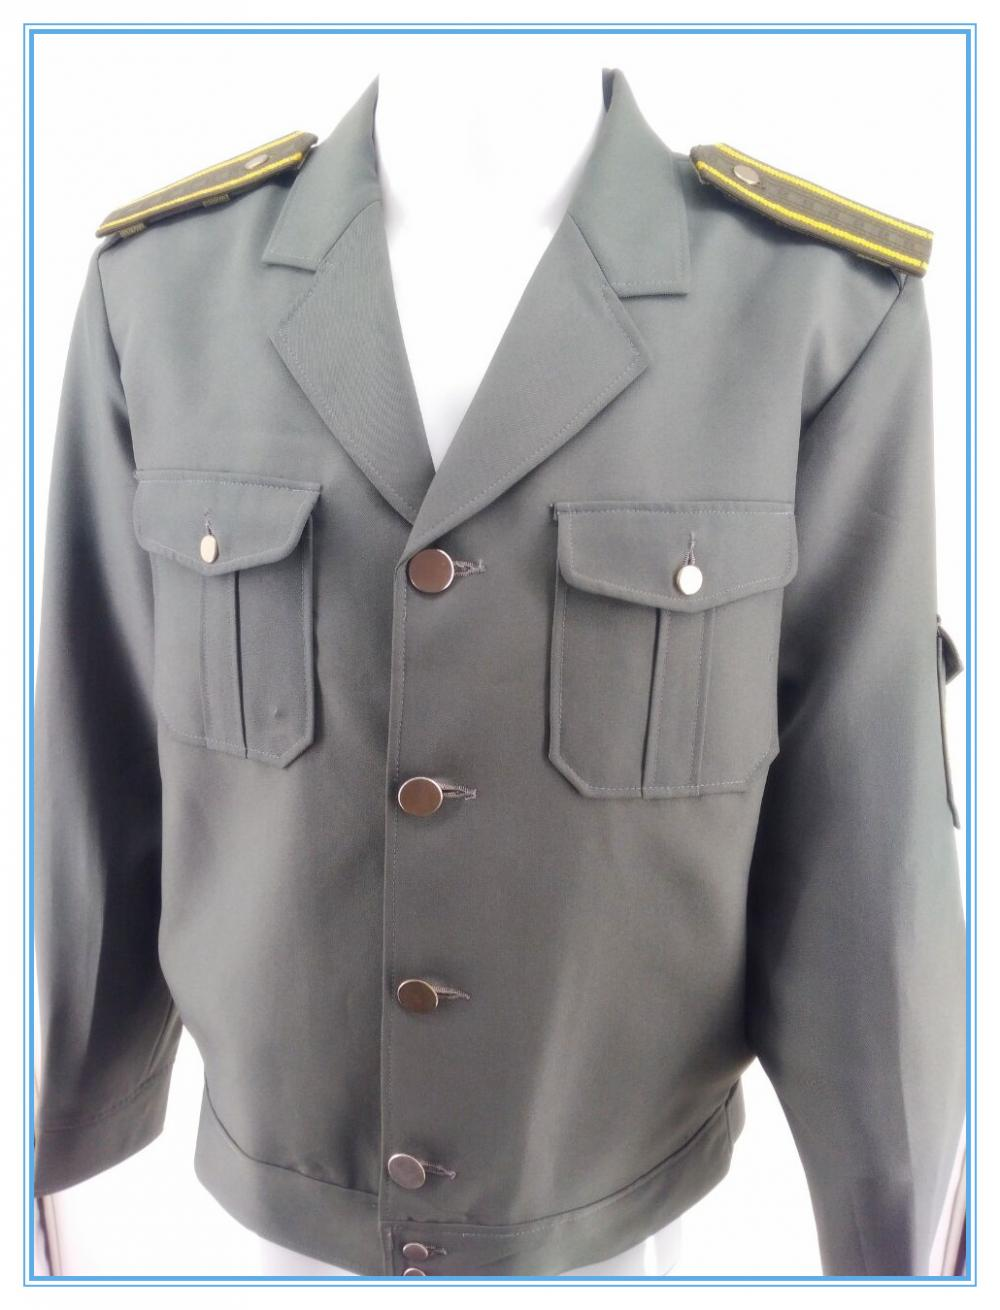 Special Uniform for Security Military